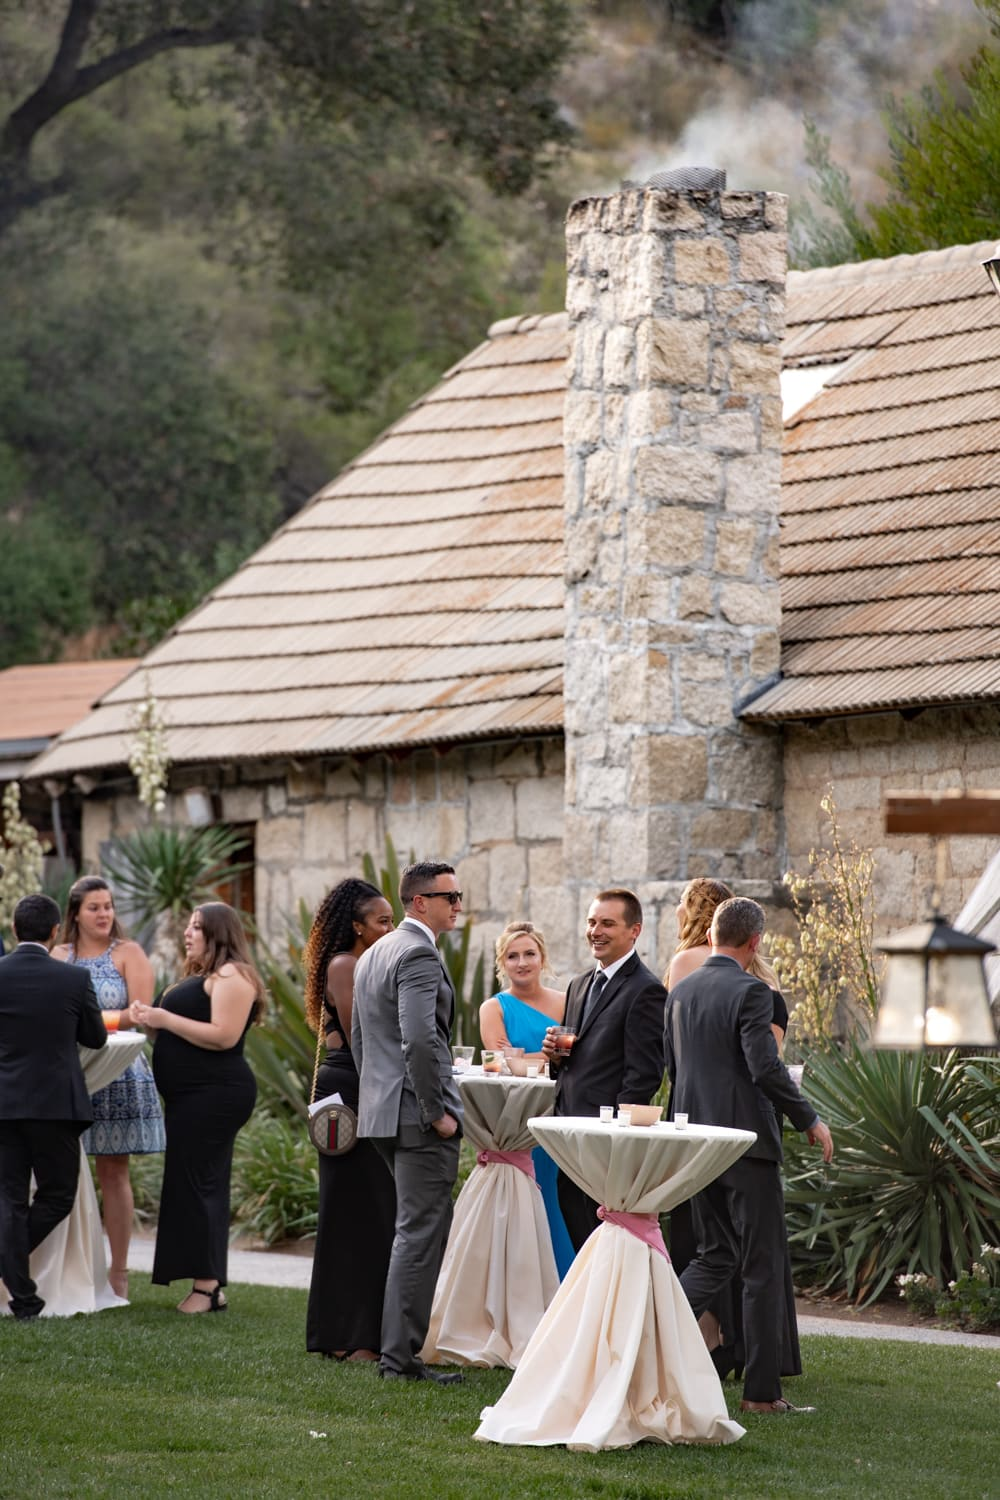 Cocktail hour at The Stone House at Temecula Creek Inn